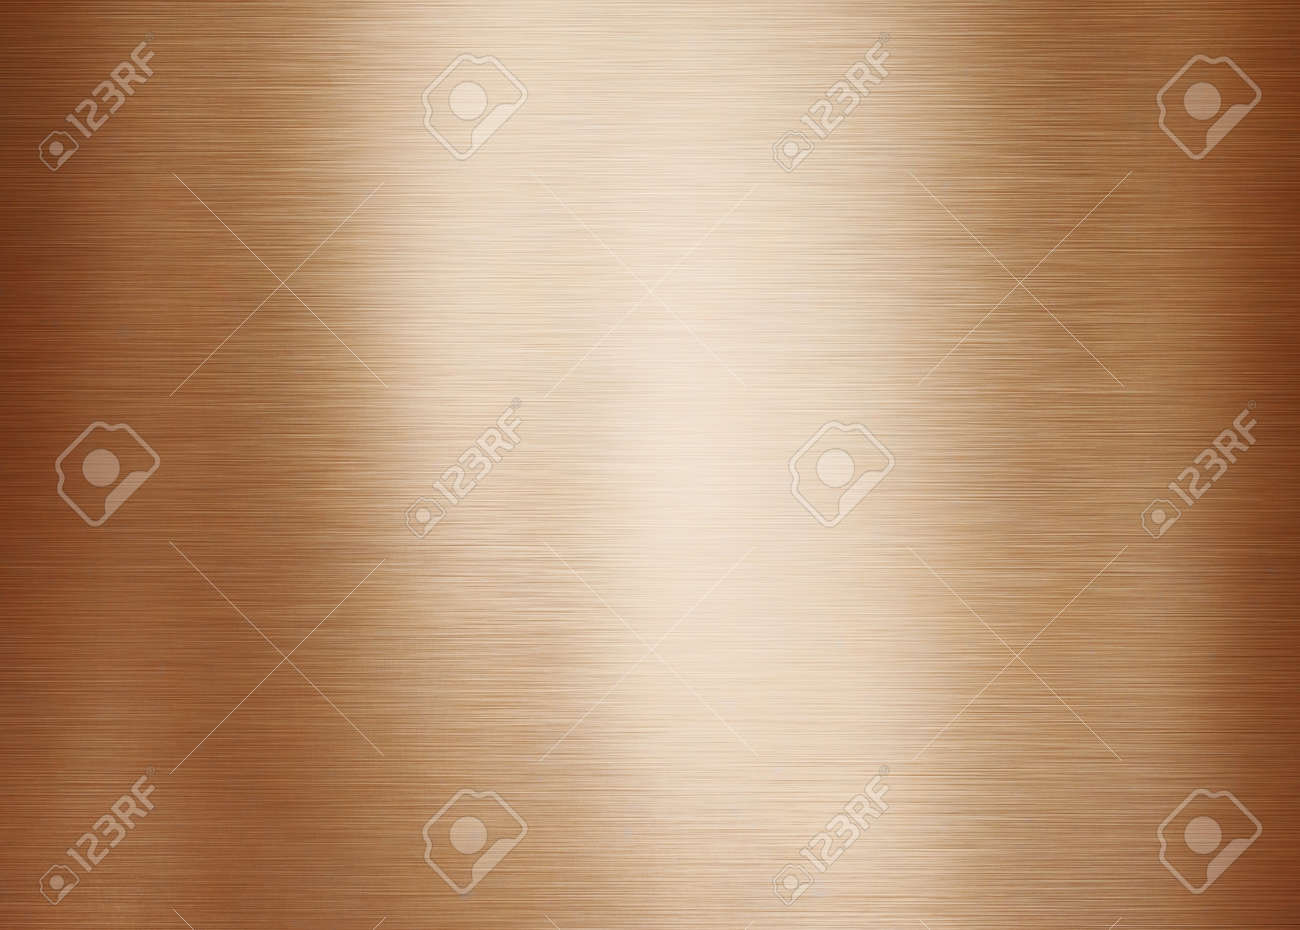 Gold or brass brushed metal background or texture - 154067682